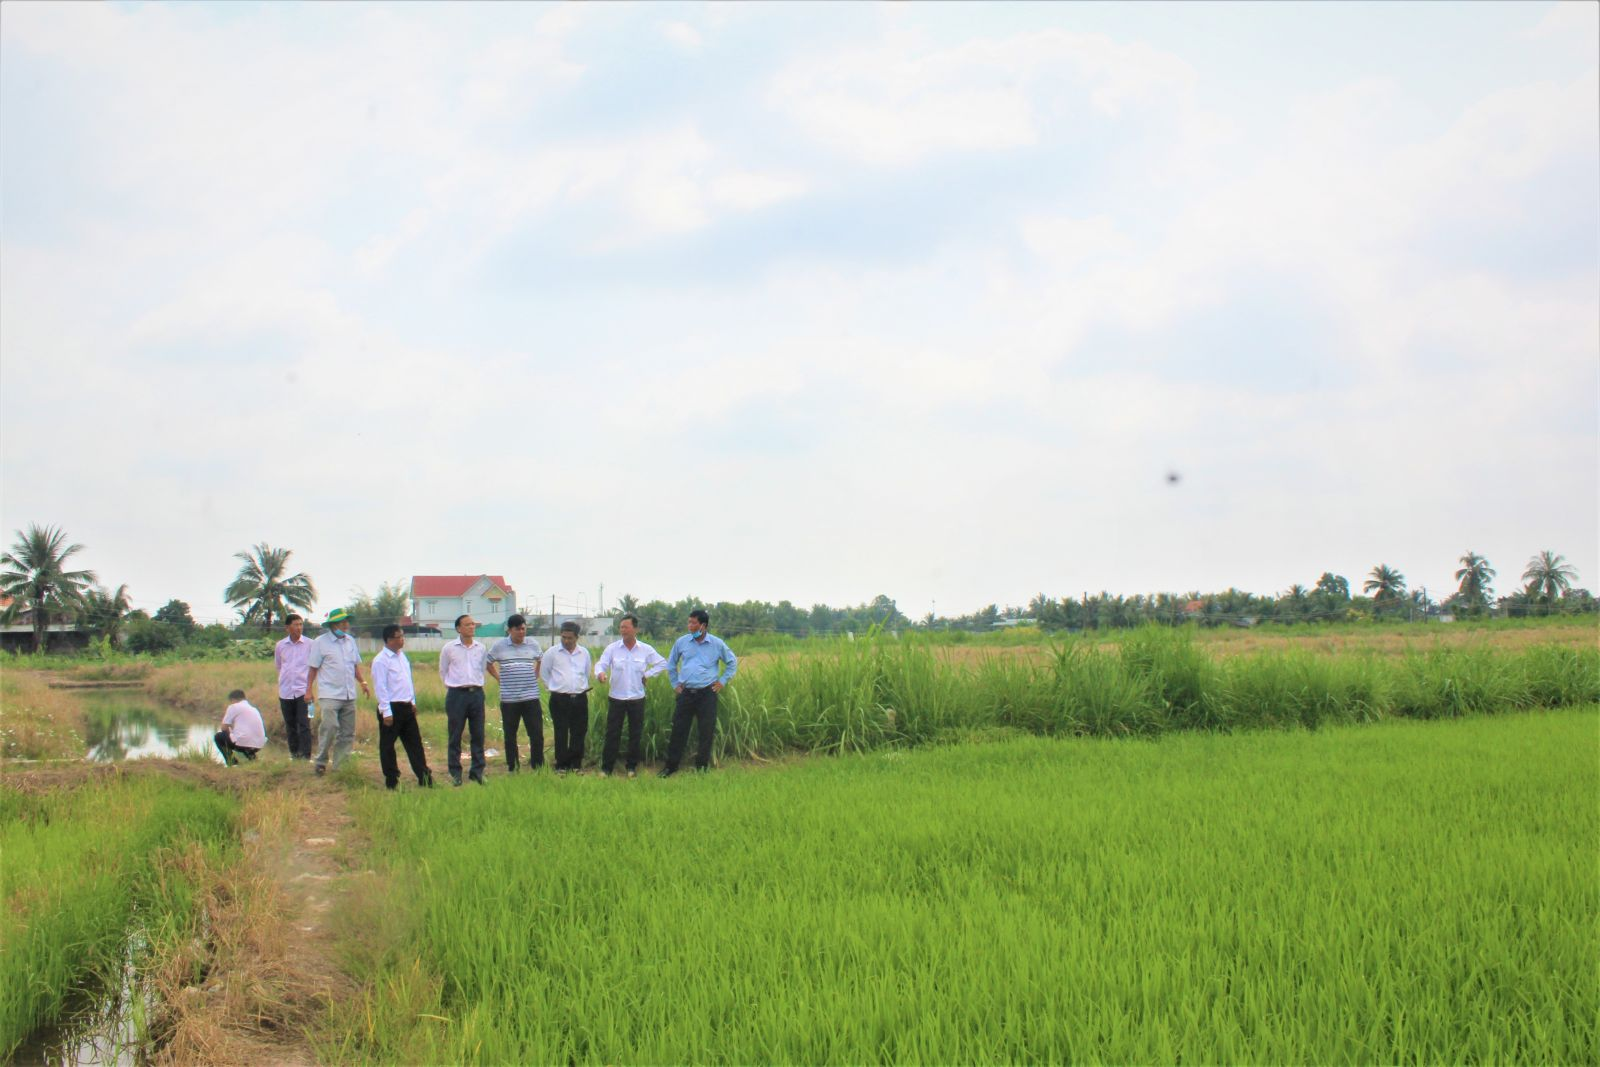 The commission examines cultivated areas for seeded rice in the third crop season out of the agricultural sector's recommendations